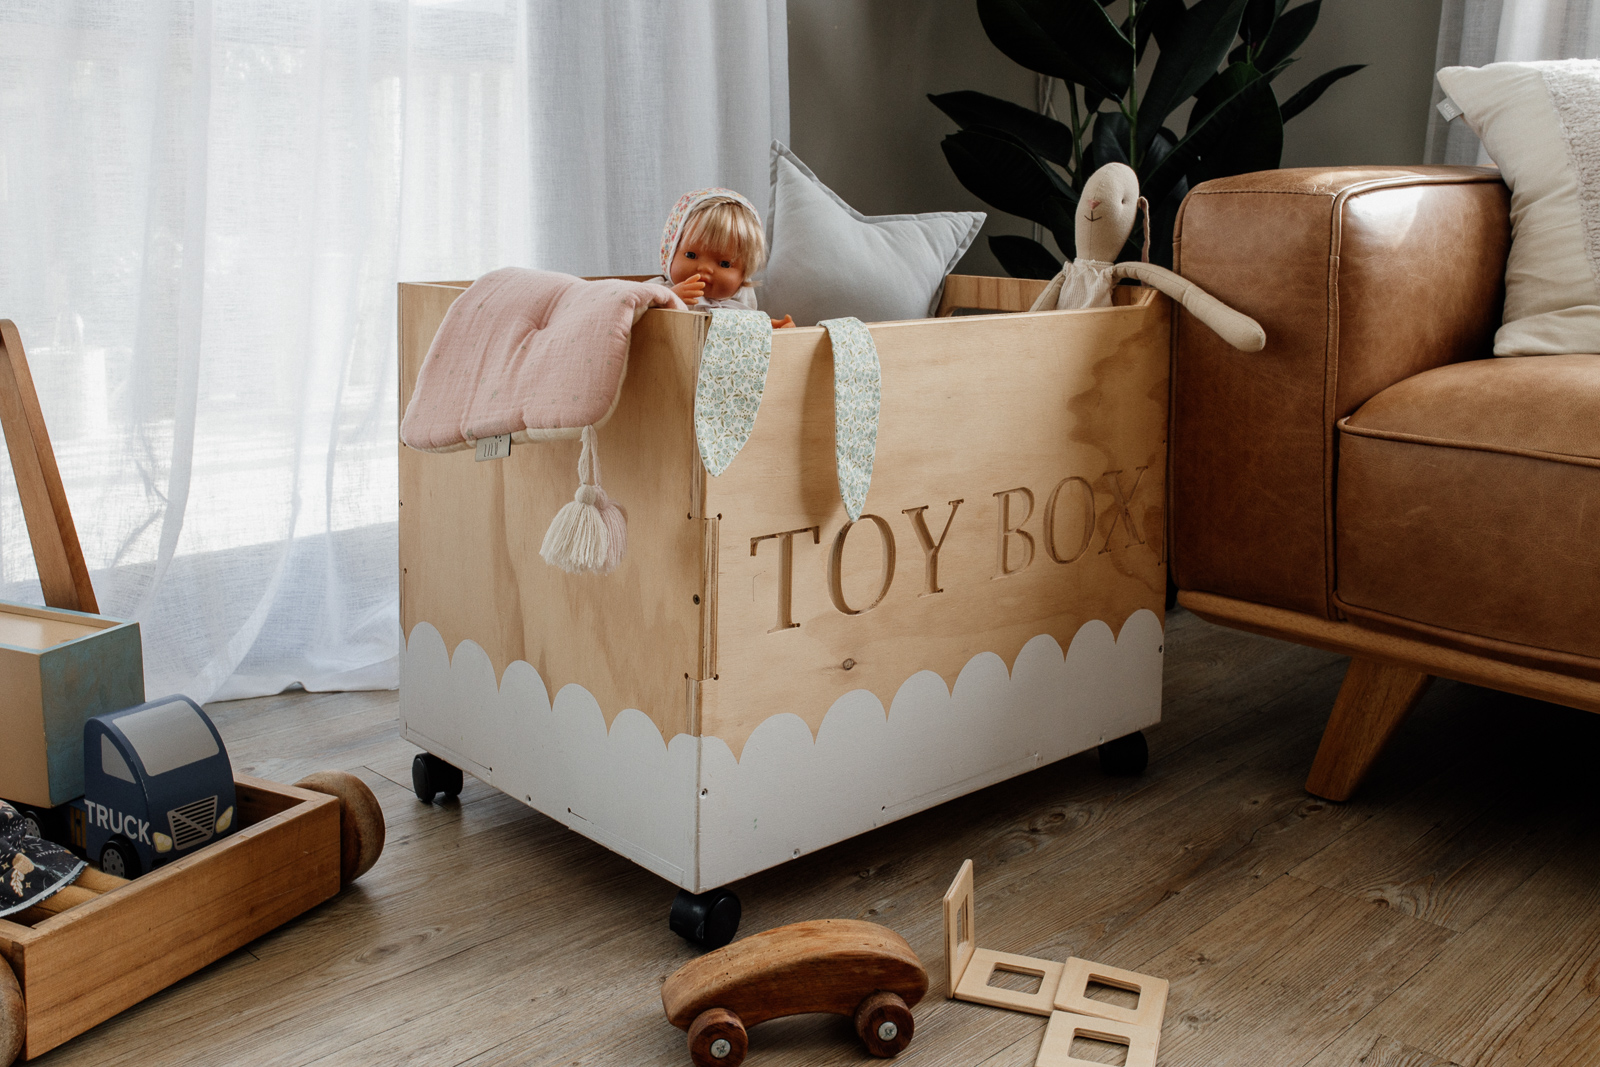 How_to_style_a_multi_use_living_space_with_kids_by_clever_poppy_toy_box.jpg